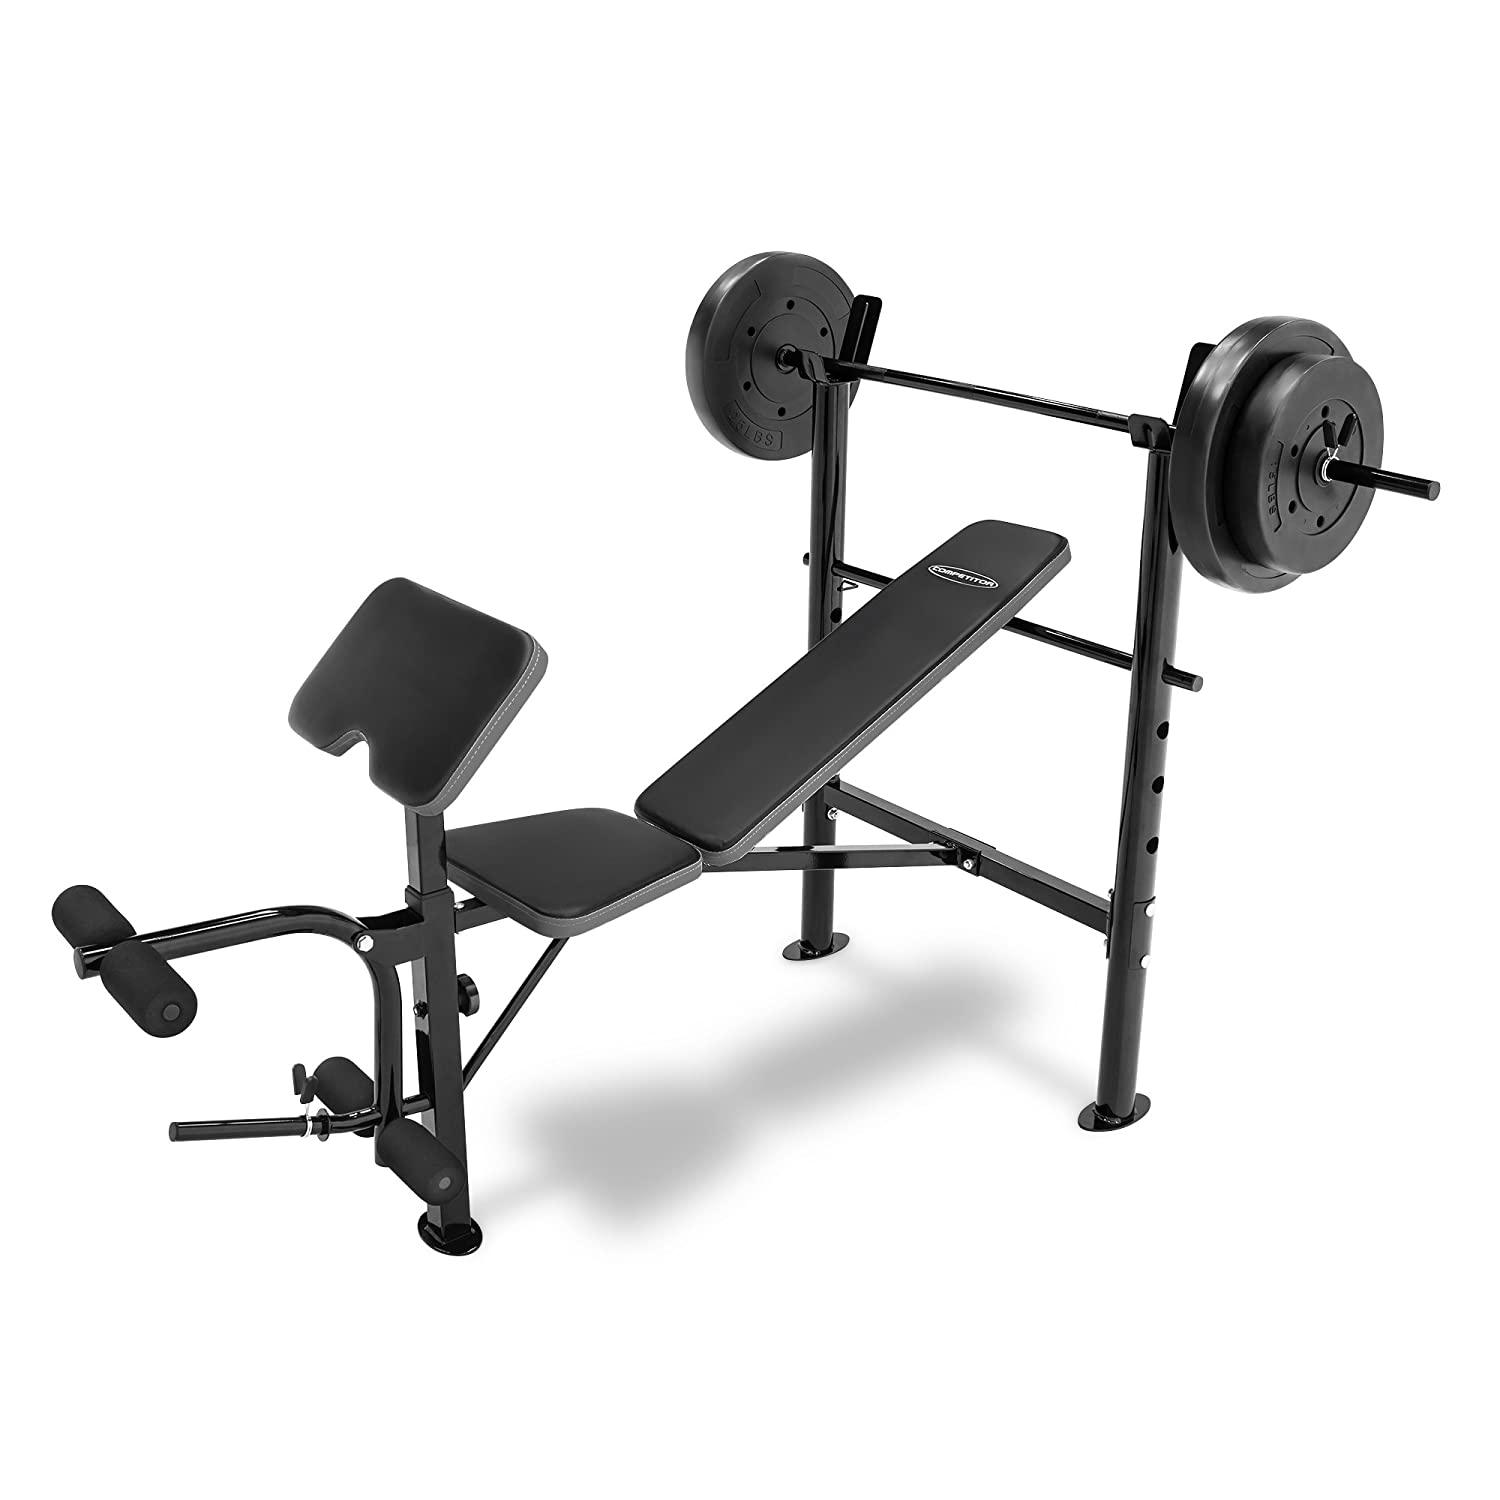 Competitor Workout Bench with 80 lbs Weight Set Combo (Black) - CB-20110